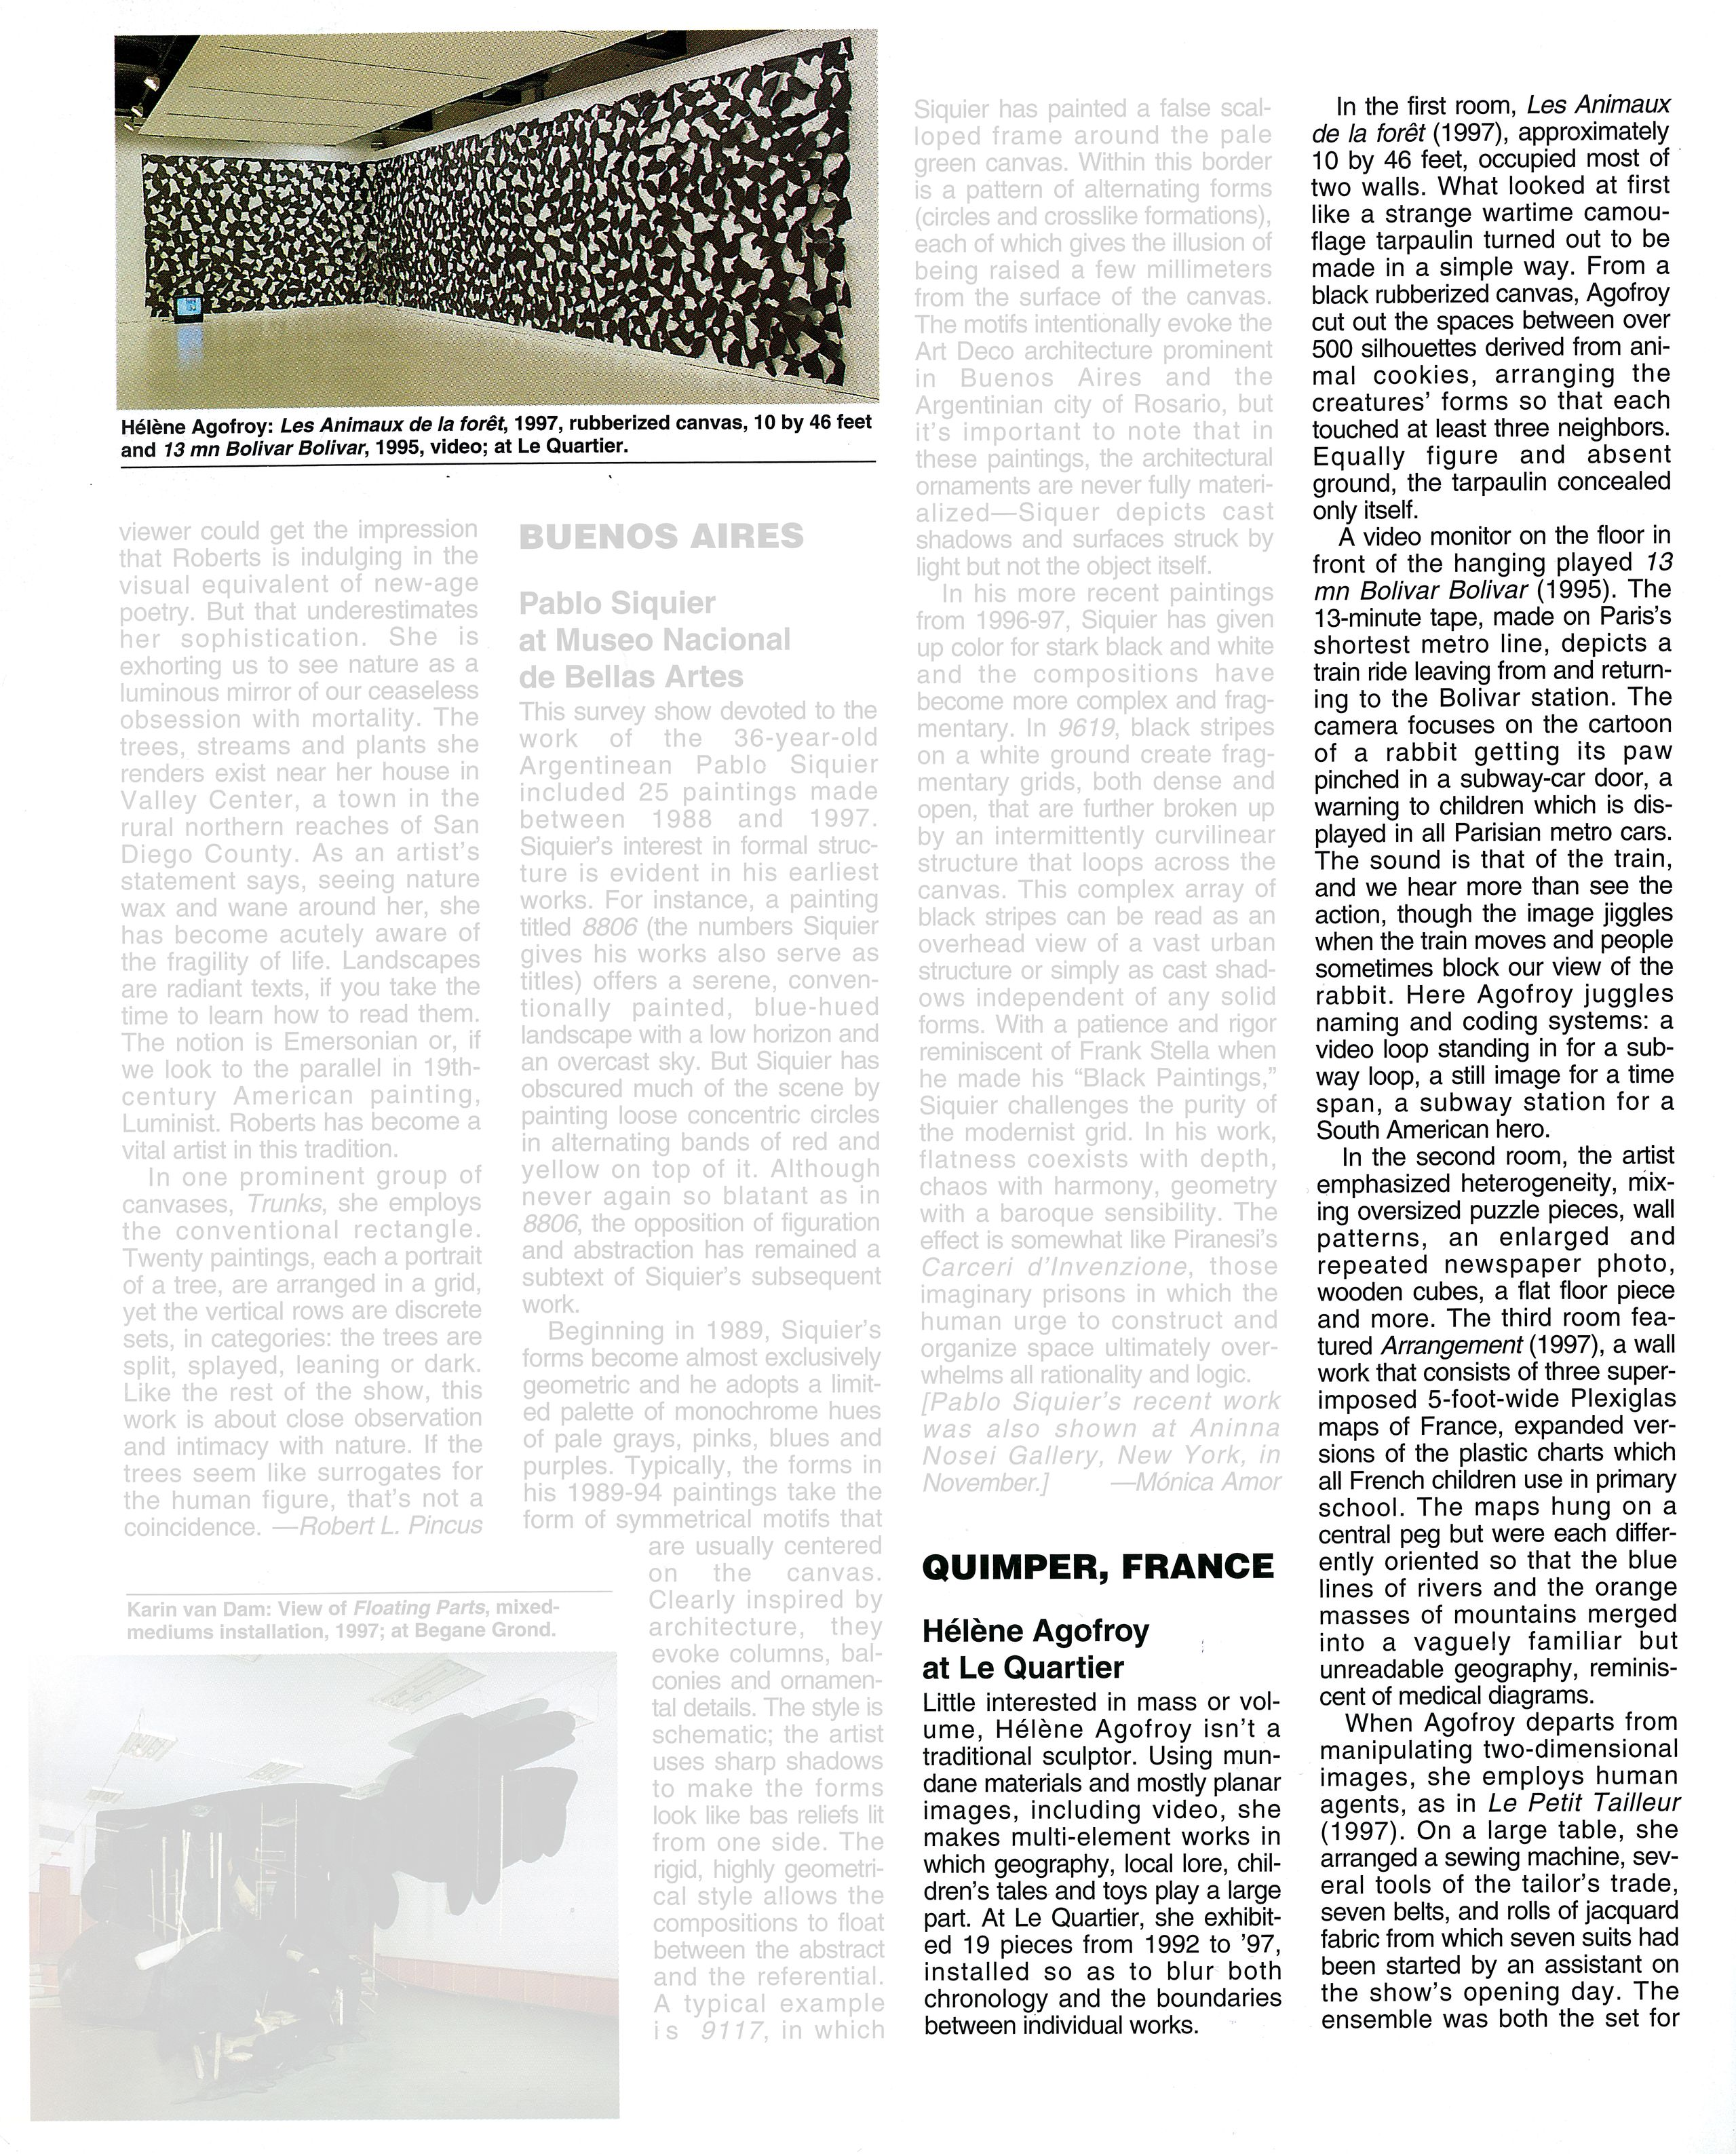 art_in_america_1998_agofroy_page1